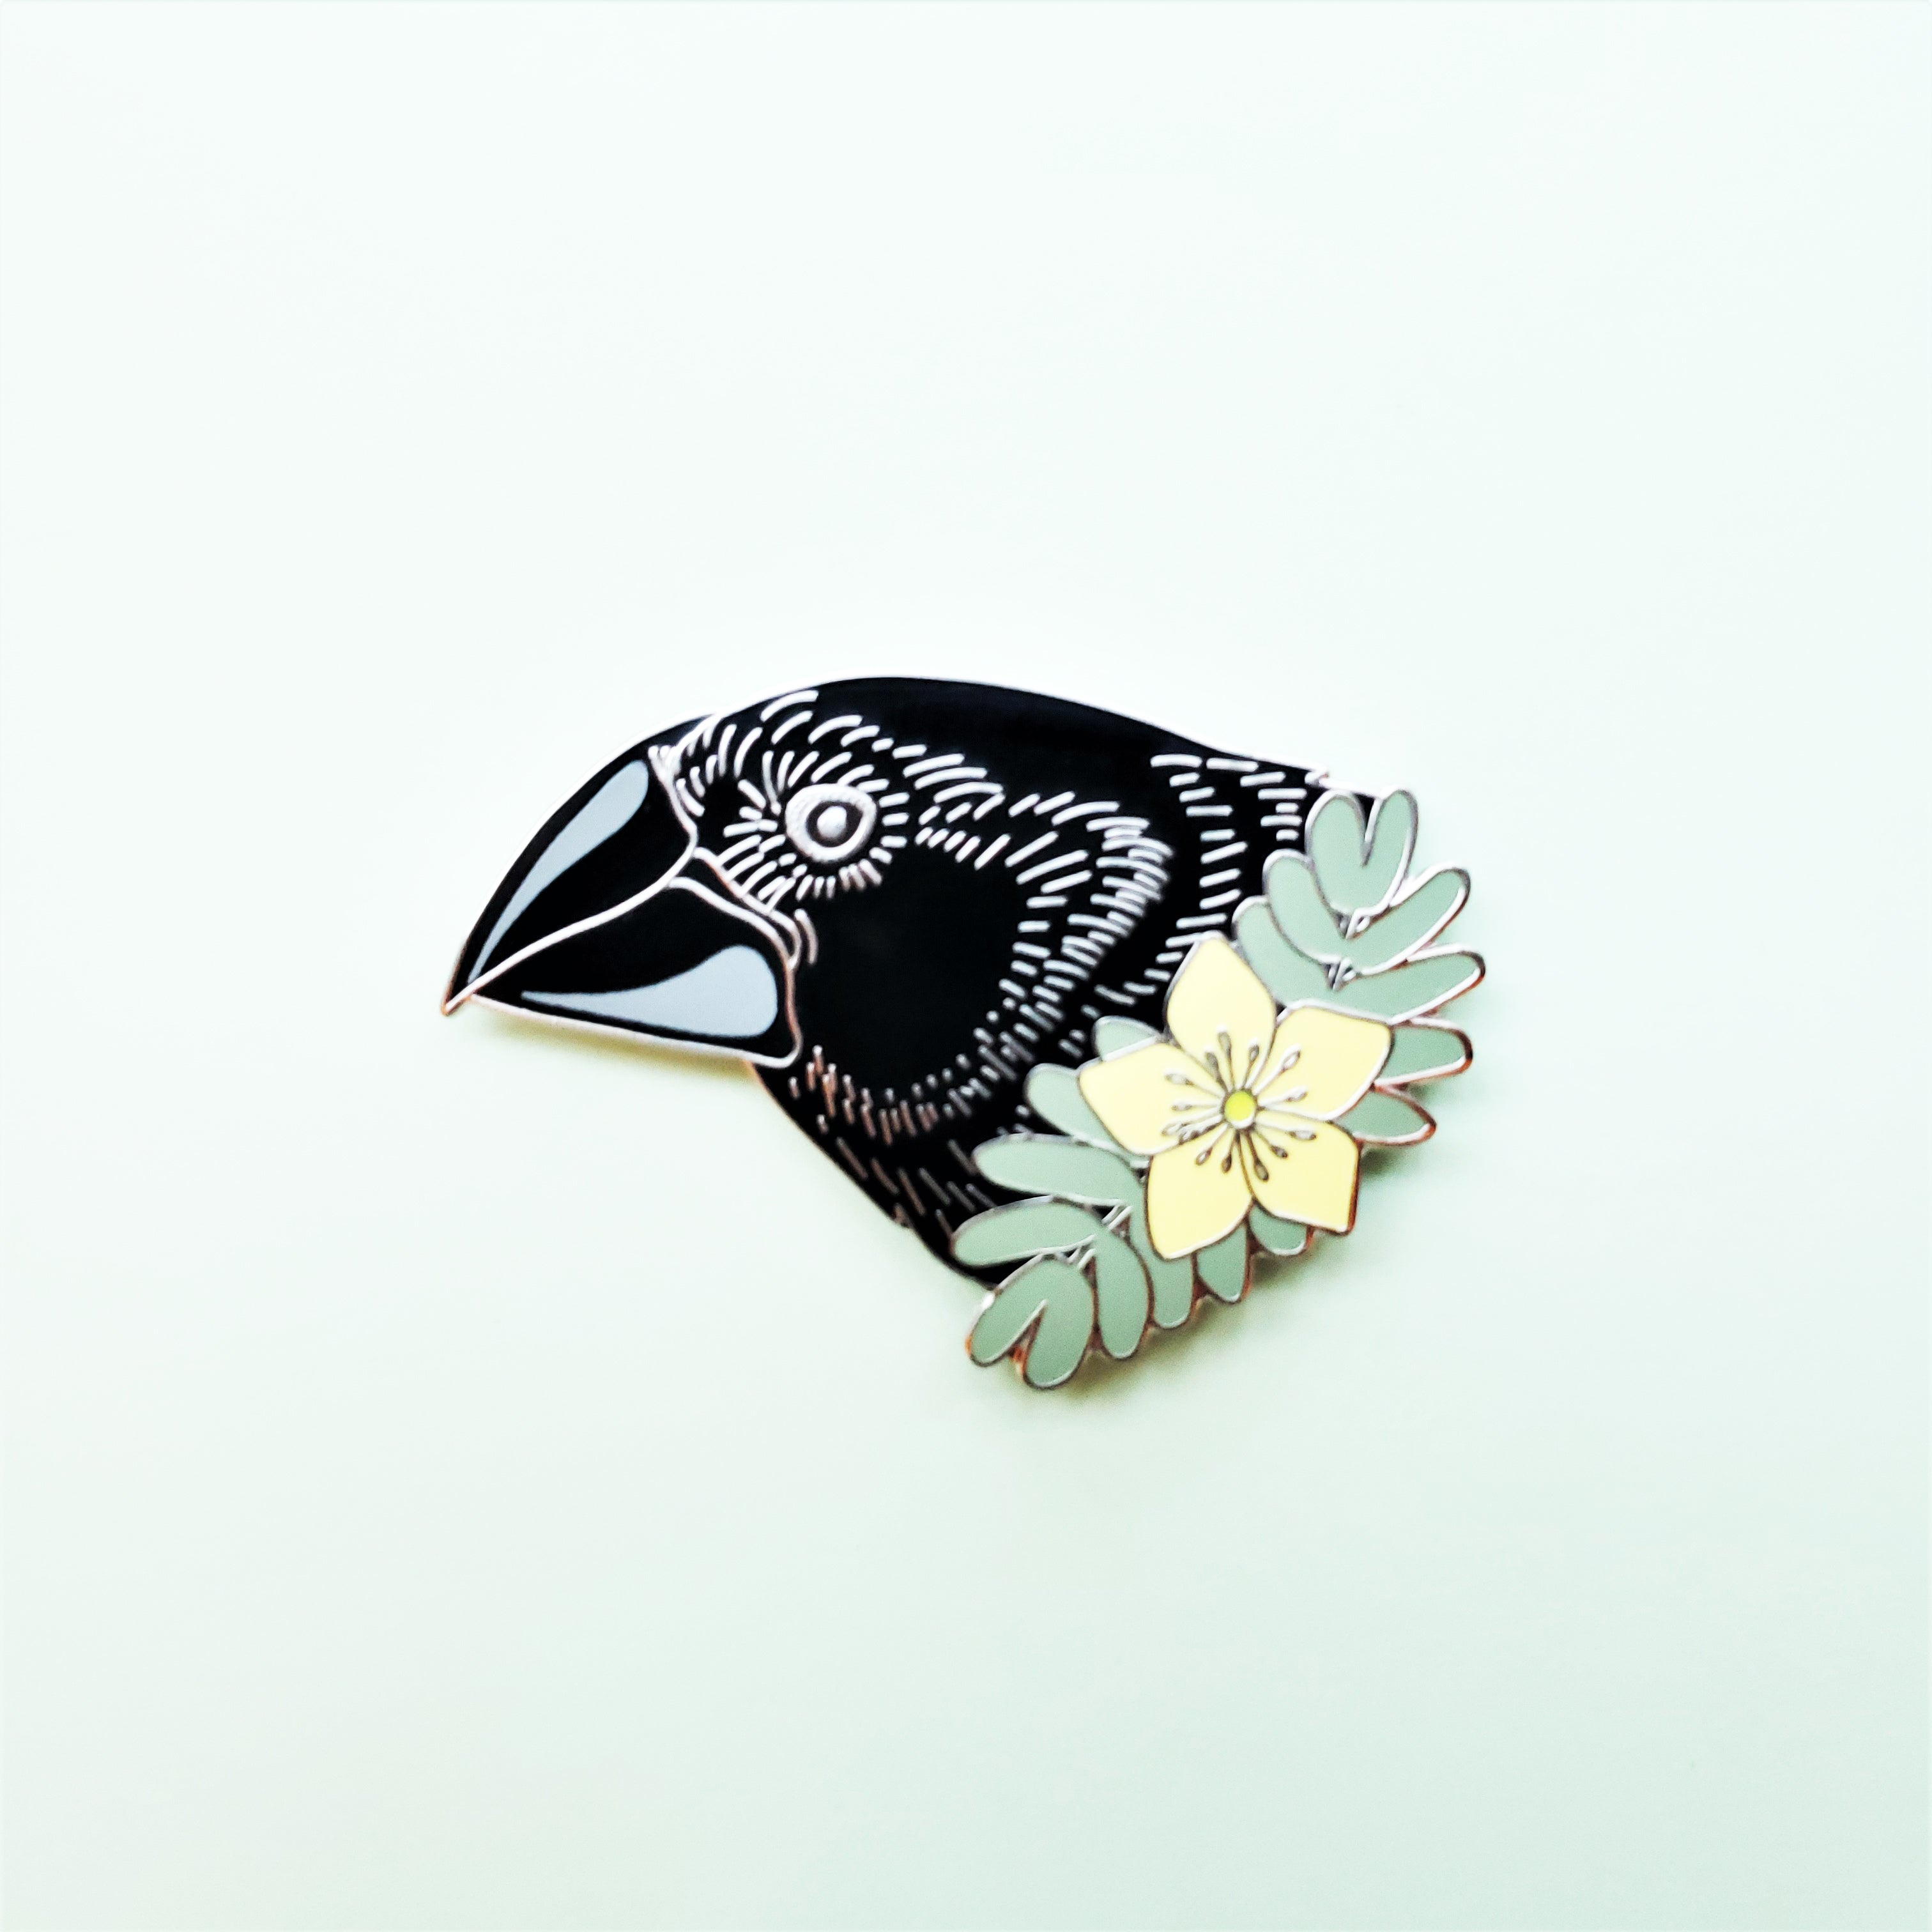 """Darwin's Finch"" Giant Ground Finch Enamel Pin"